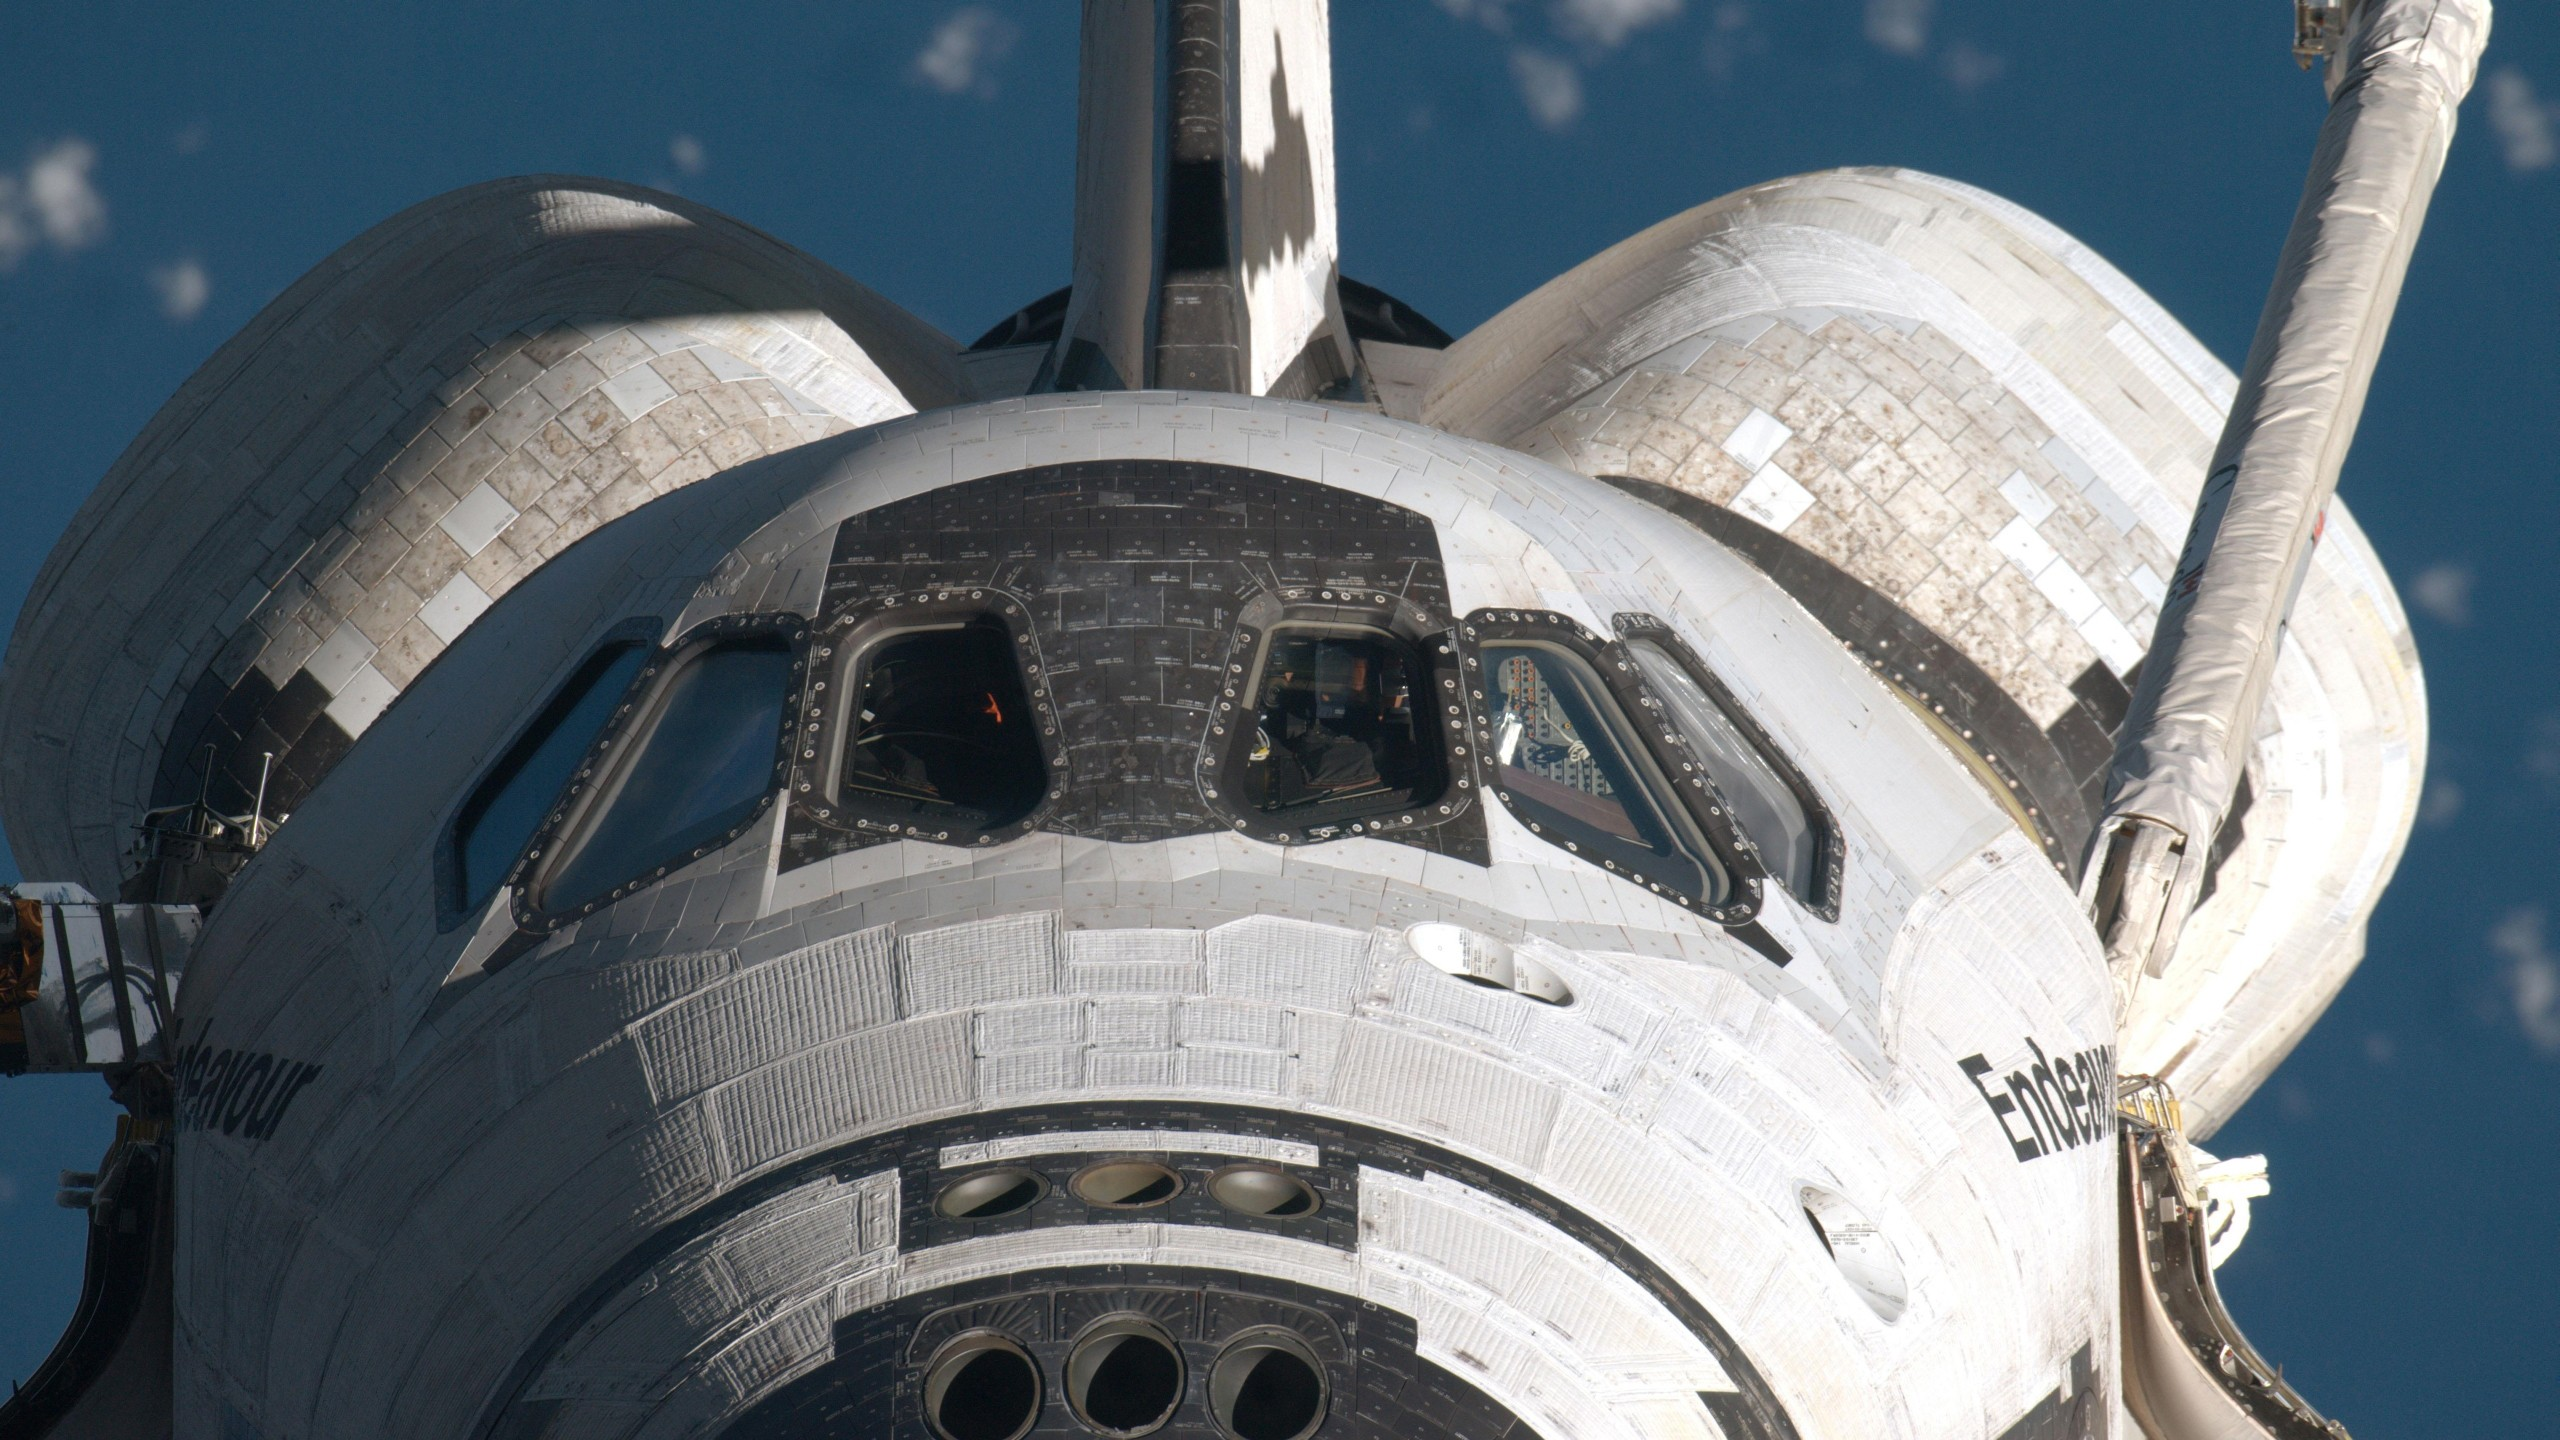 Space Shuttle Wallpaper 2560x1440 - WallpaperSafari